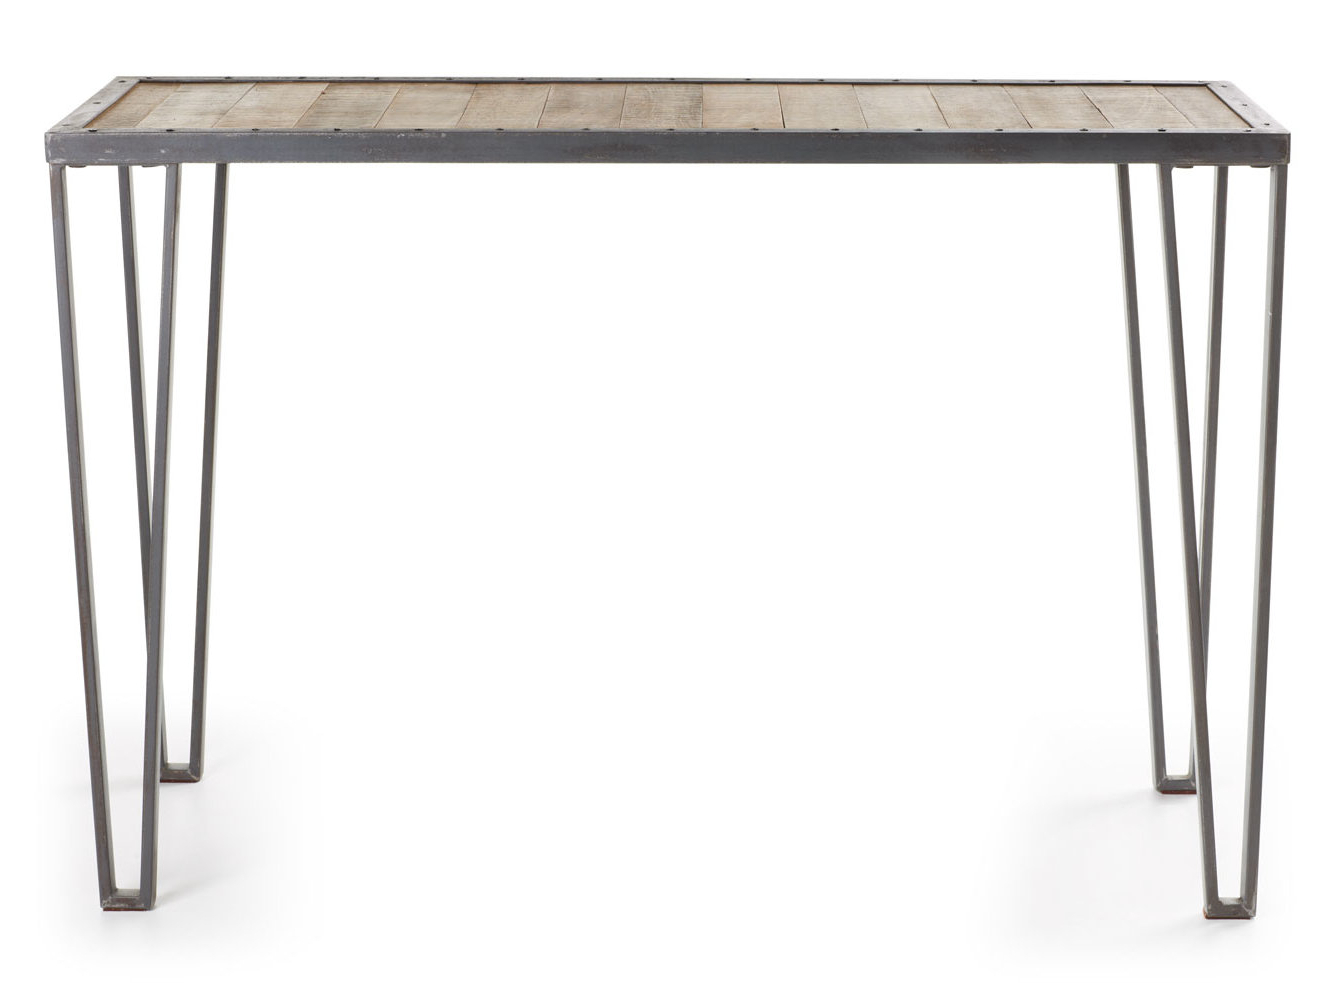 Grey Painted Console Table | Wayfair.co.uk In Mix Agate Metal Frame Console Tables (Gallery 5 of 20)